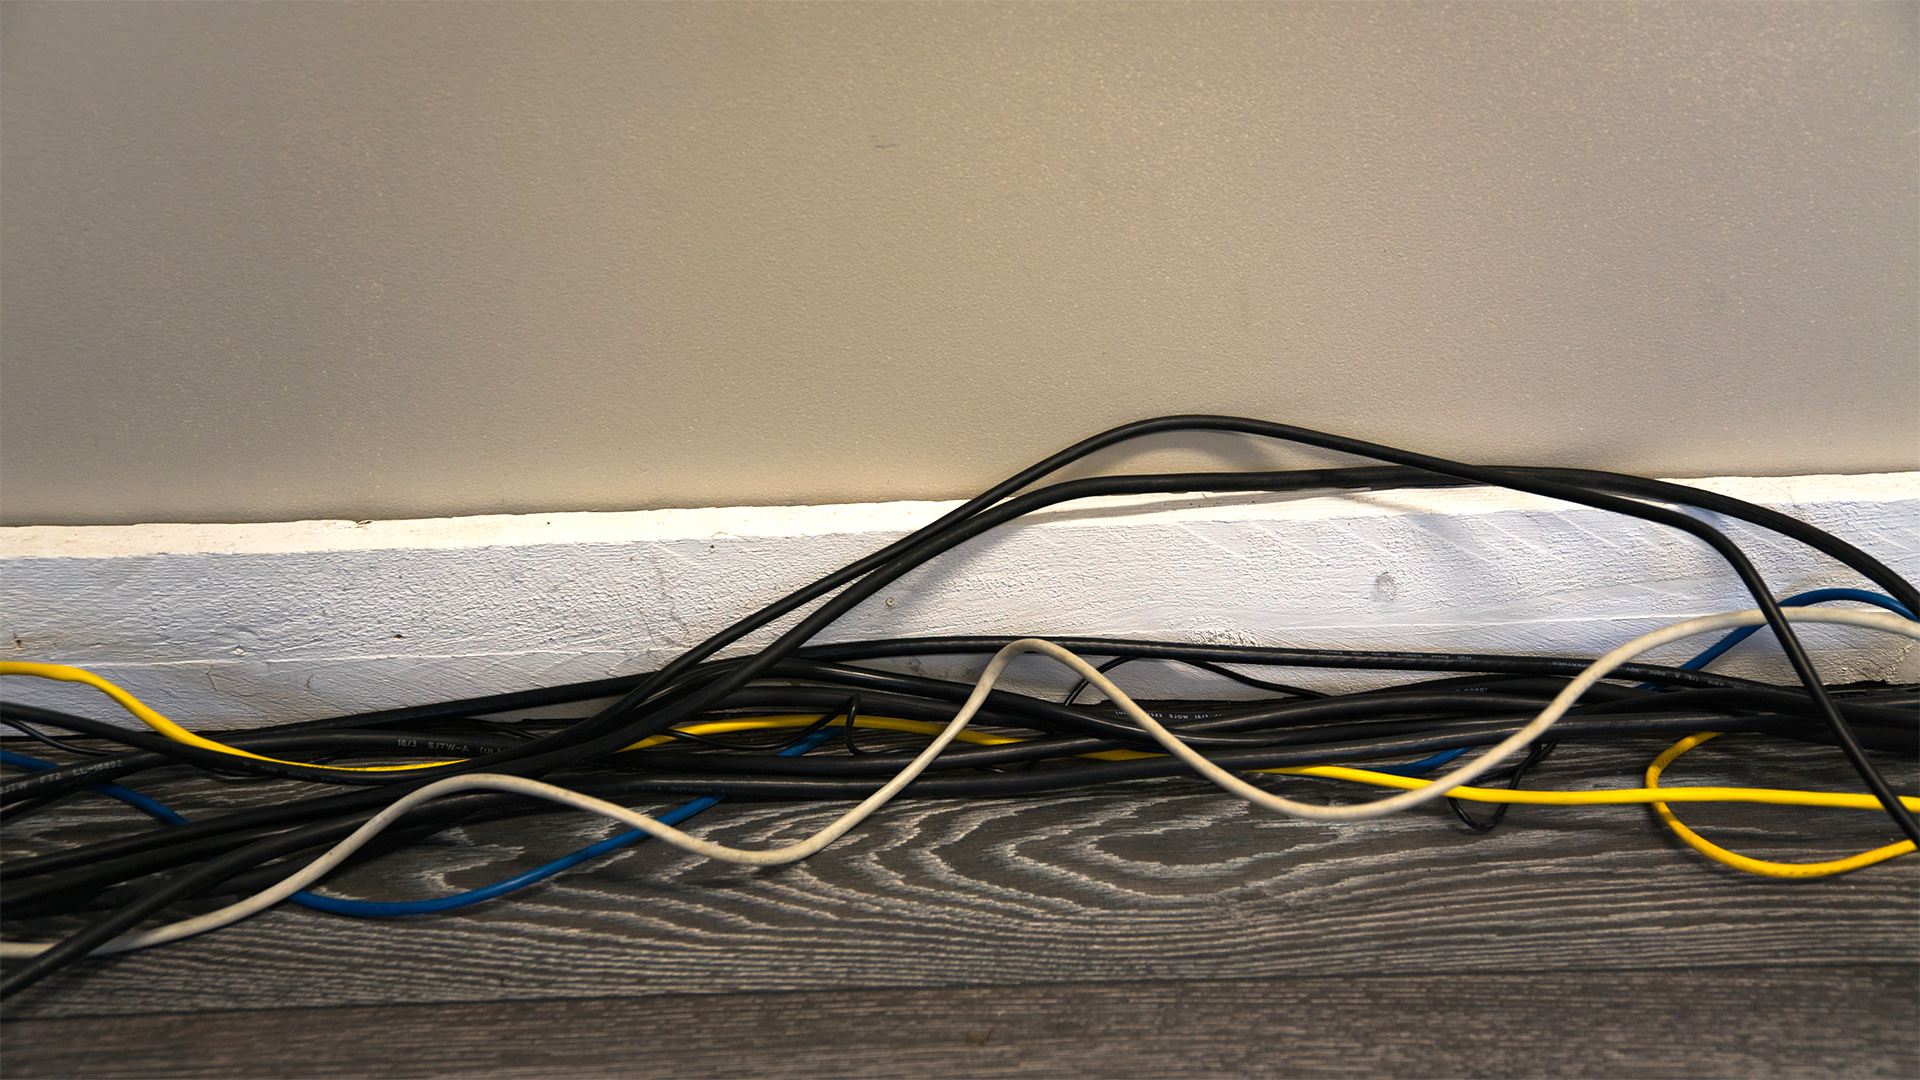 Top 10 conference room cable management fails of 2016 ubiq 2 so many cables along baseboard that baseboard no longer visible keyboard keysfo Gallery